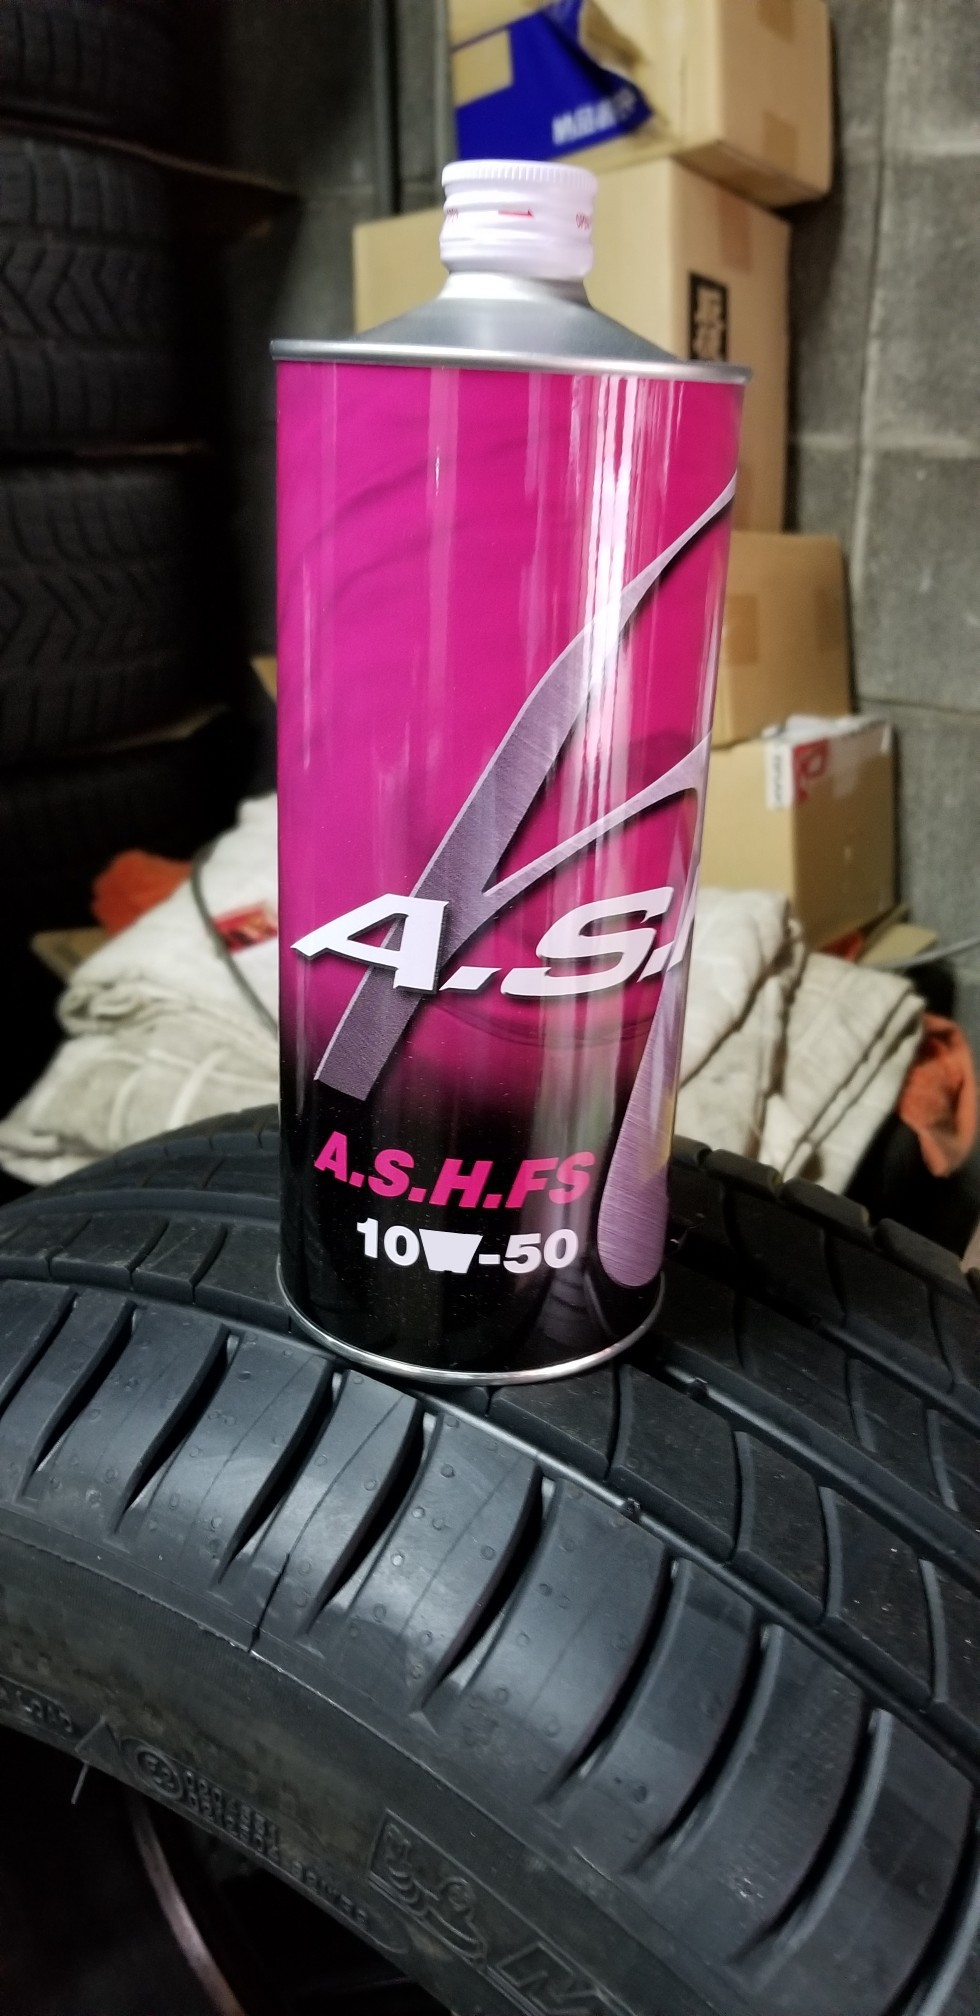 JCD PRODUCTS A.S.H. FS OIL 10W-50